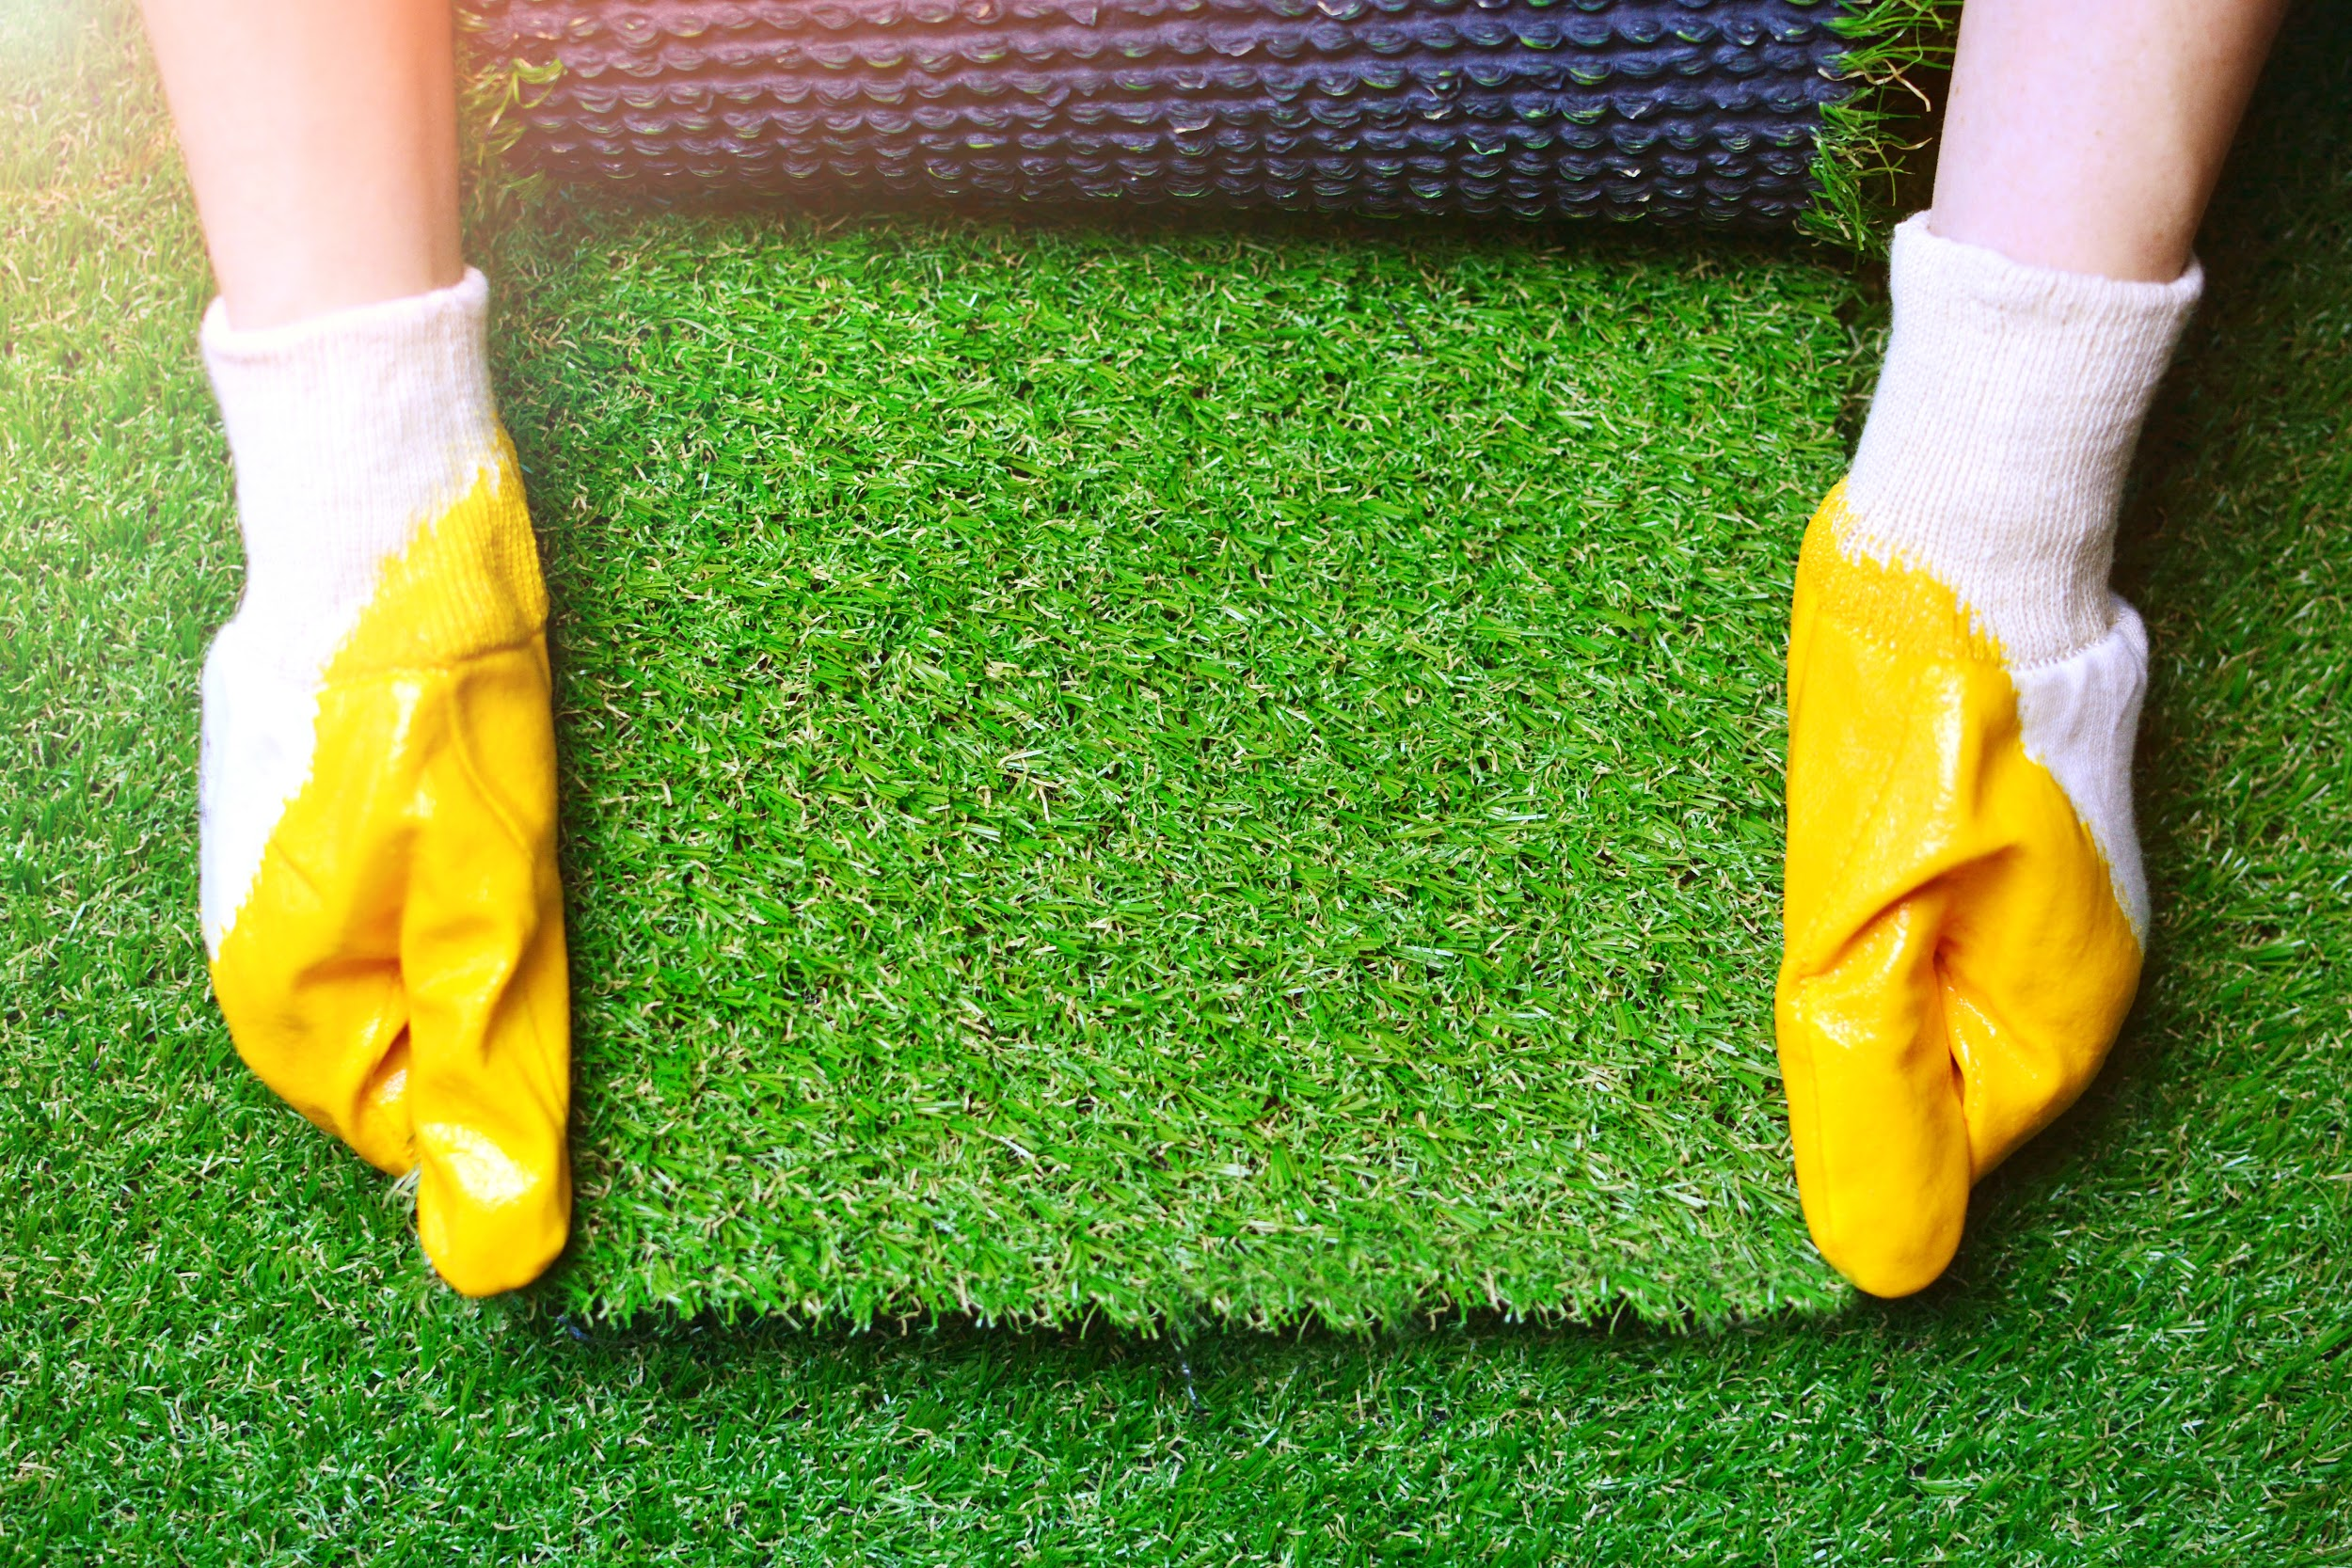 4 Things to Know Before Self-Installing Your Own Turf